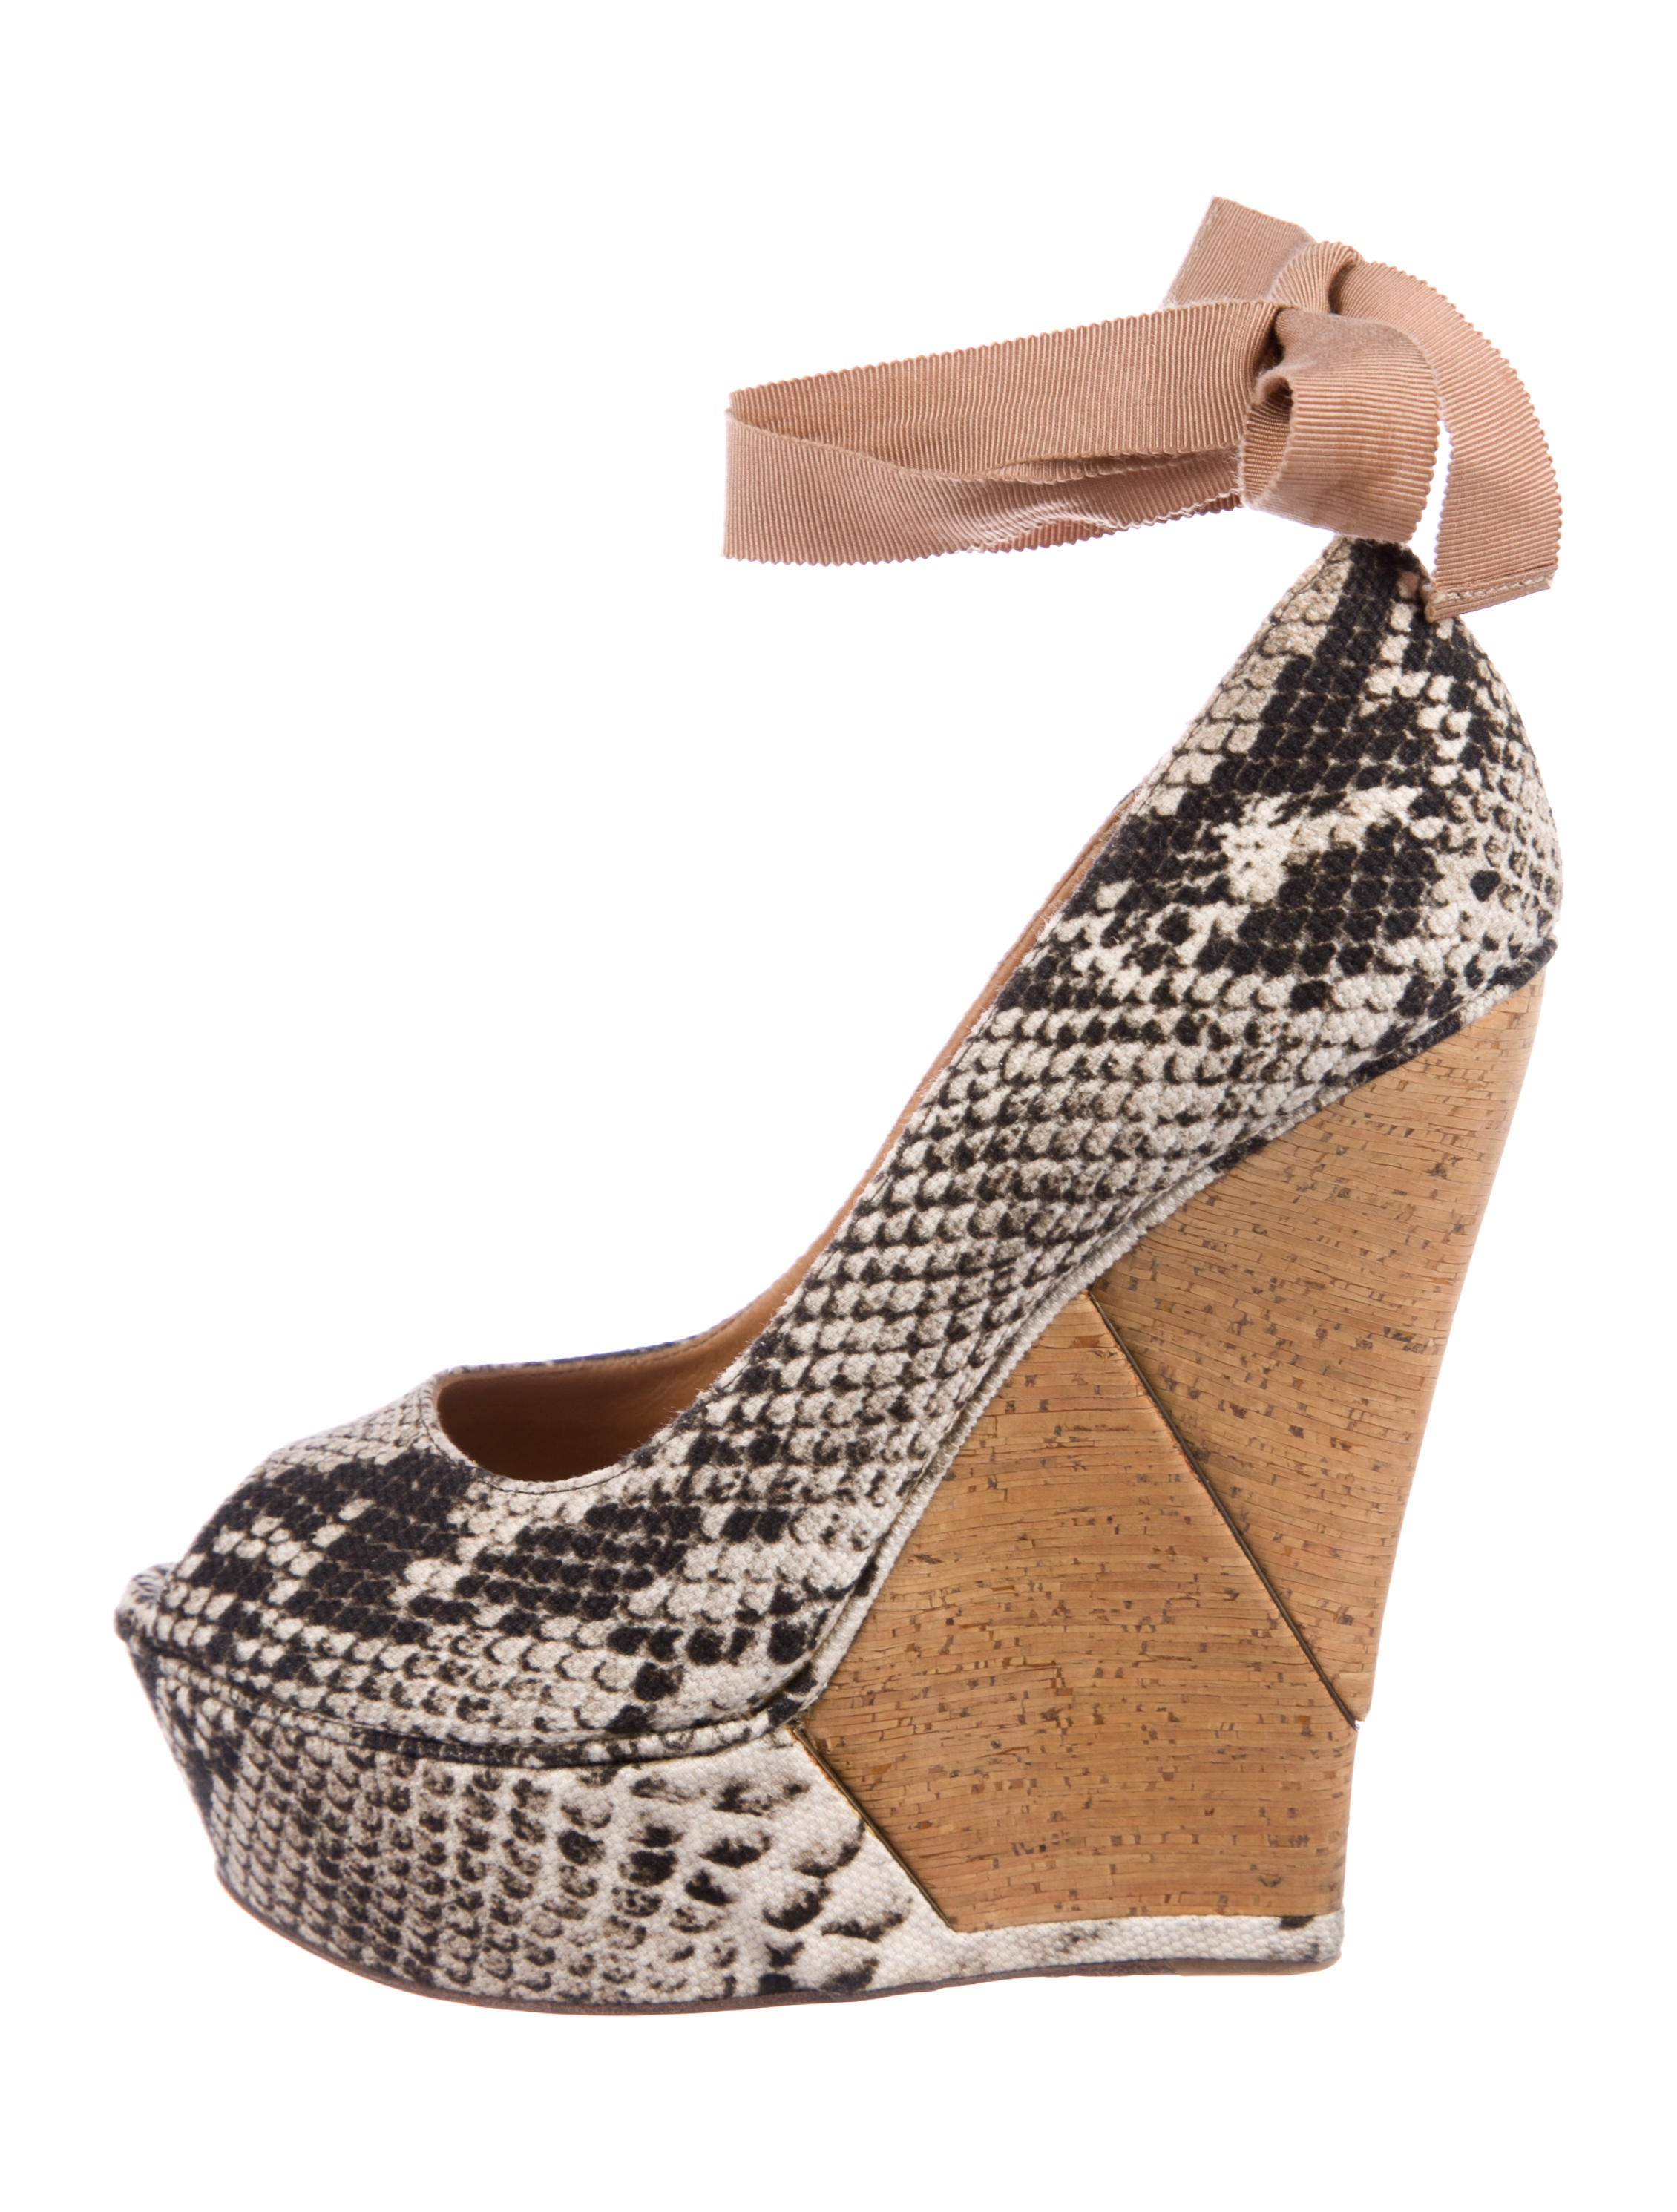 Lanvin Embossed Peep-Toe Wedges low cost sale online get to buy sale online buy cheap get authentic sale looking for cheap sale outlet store 1RrdL